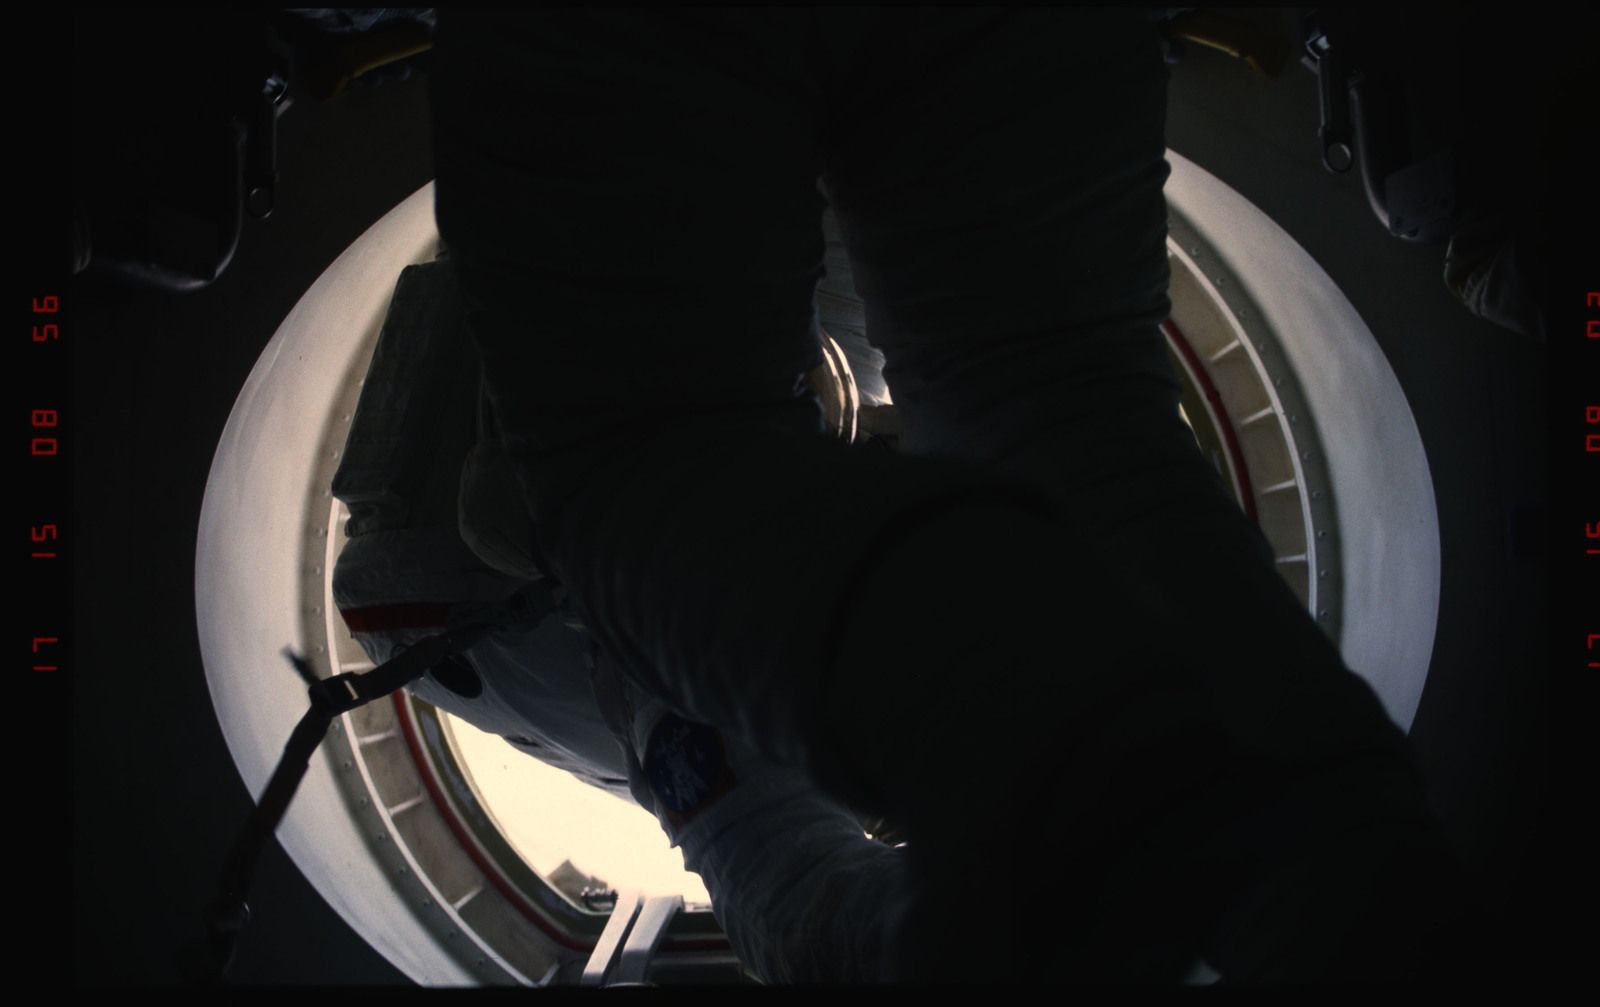 STS054-05-026 - STS-054 - Views of EVA Crewmembers in the payload bay returning to middeck air lock.